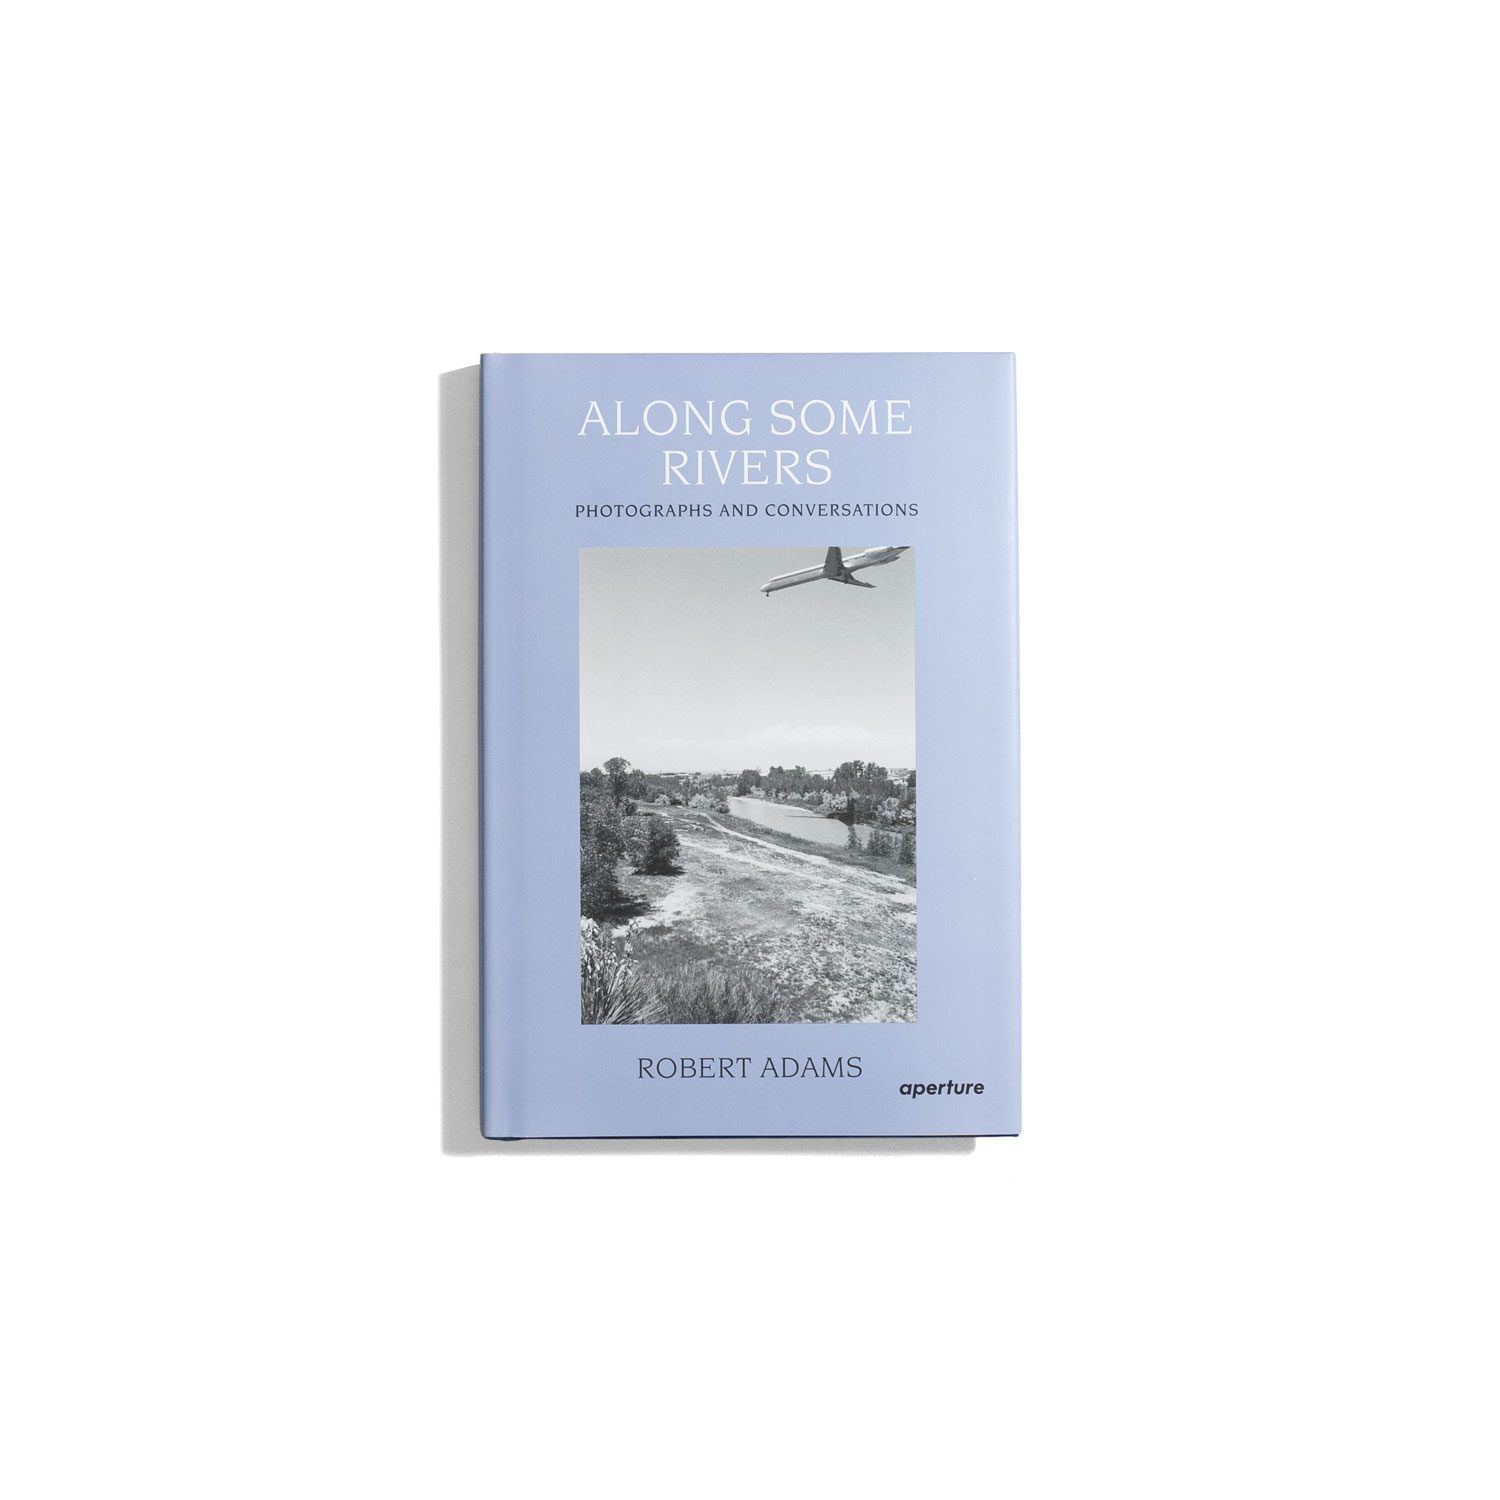 Along Some Rivers: Photographs and Conversations - Robert Adams